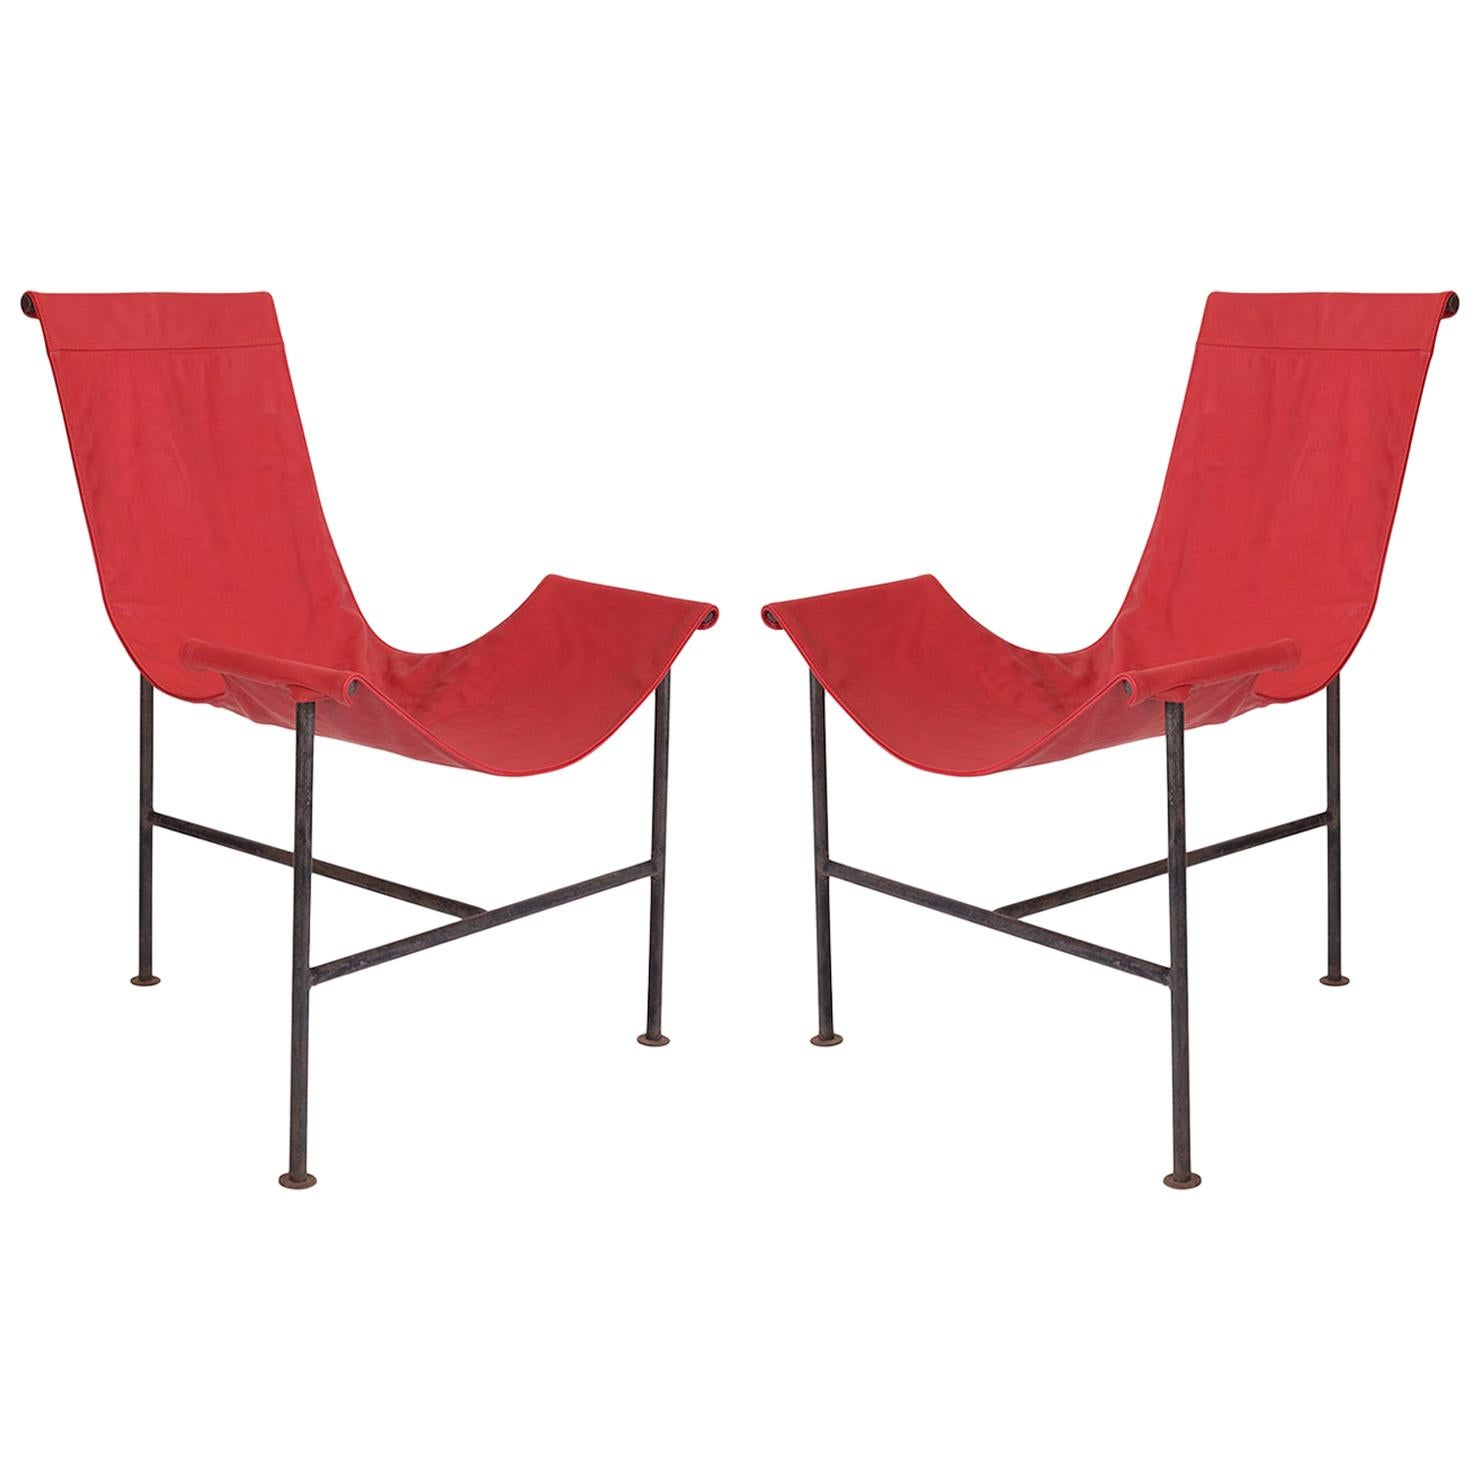 Pair of Iron & Leather Sling Chairs after Giorgio Belloli